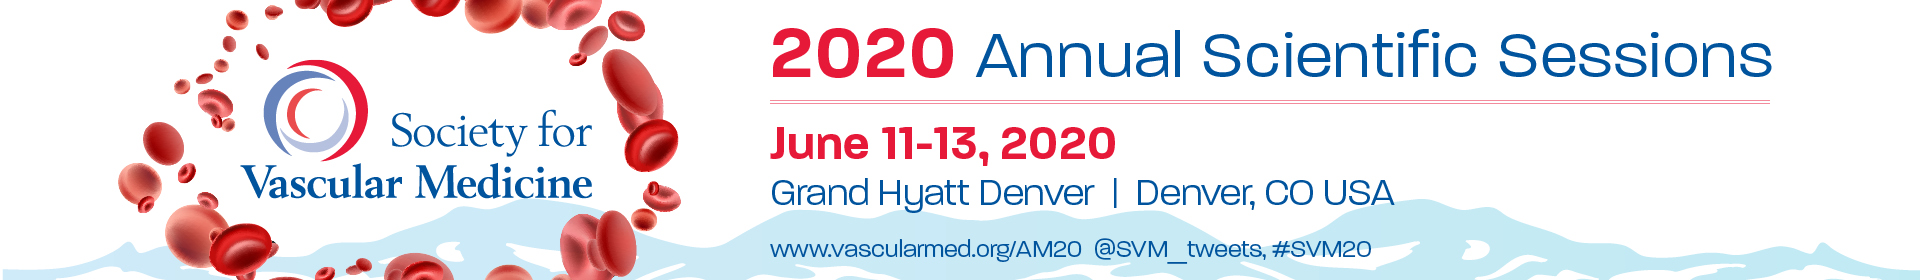 SVM 2020 Annual Scientific Sessions Event Banner